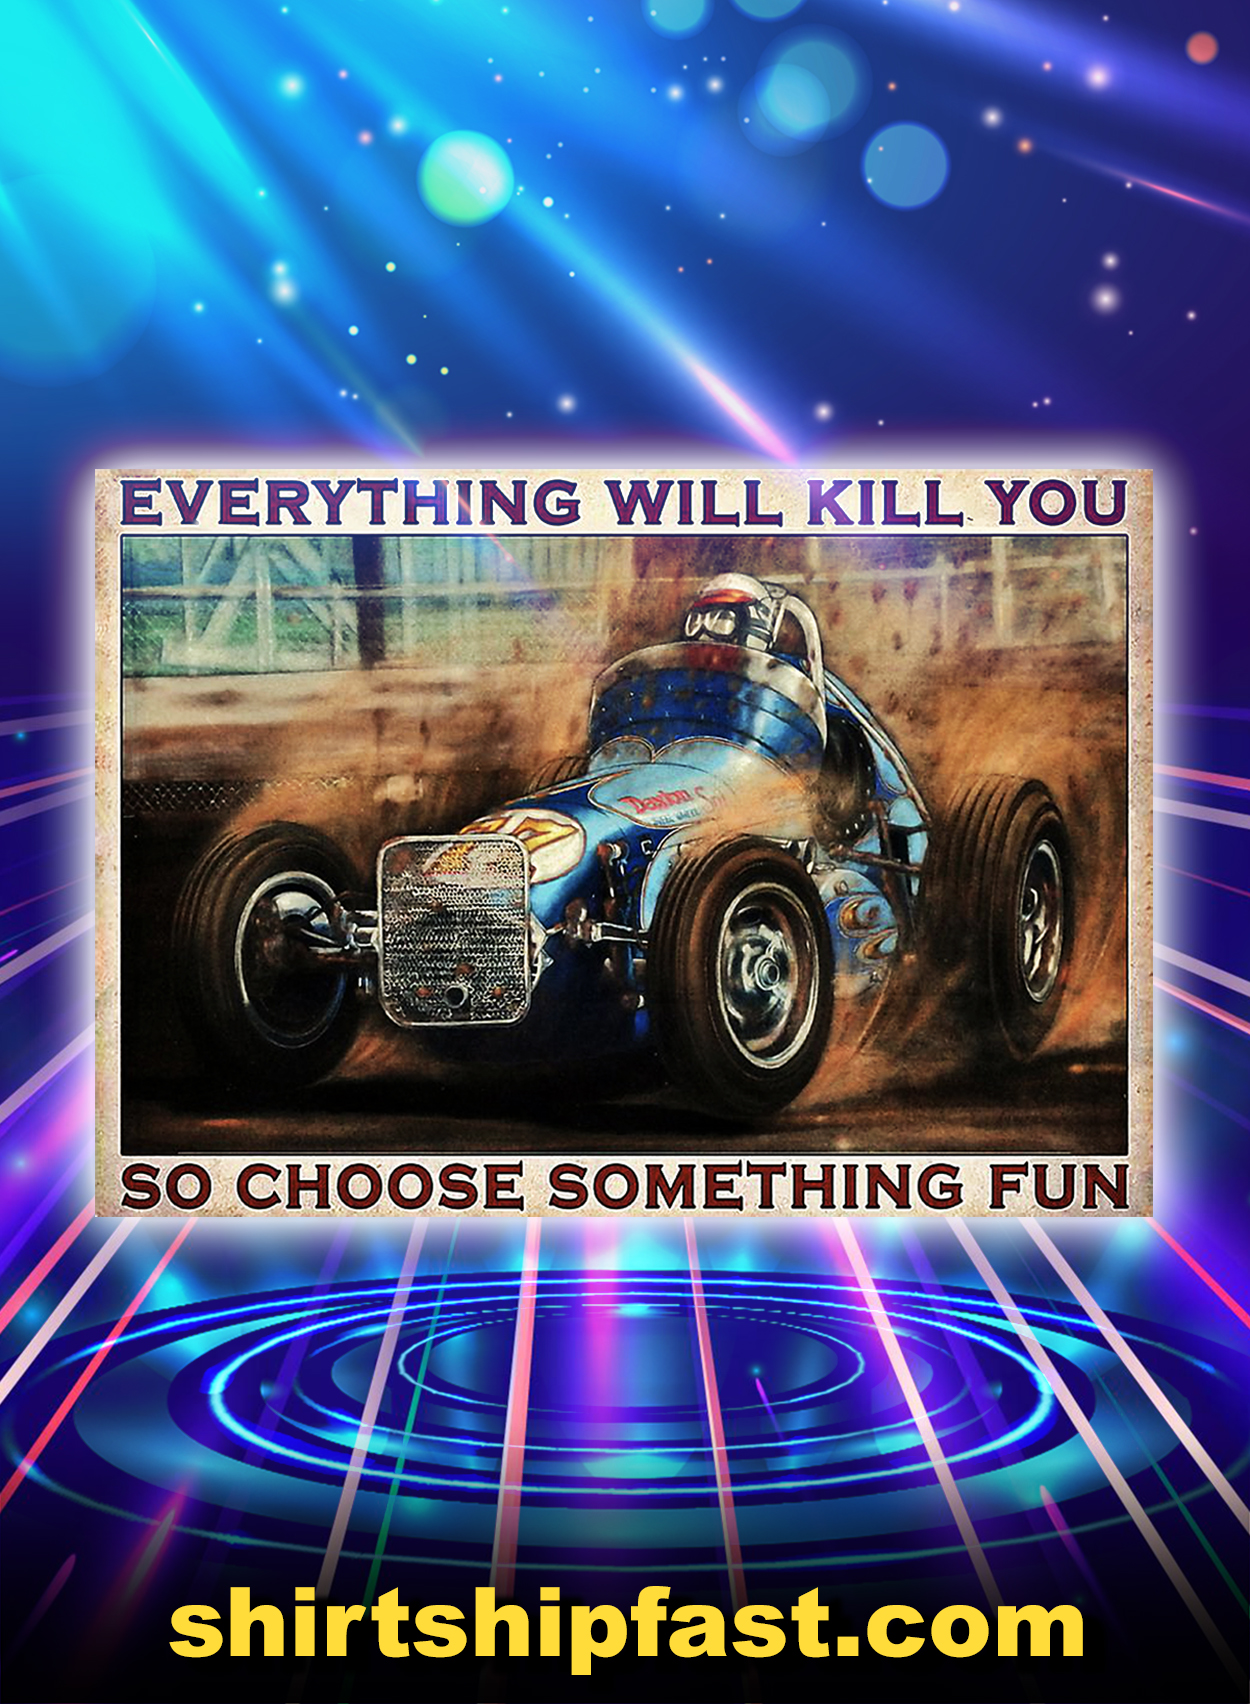 Dirt track everything will kill you so choose something fun poster - A2